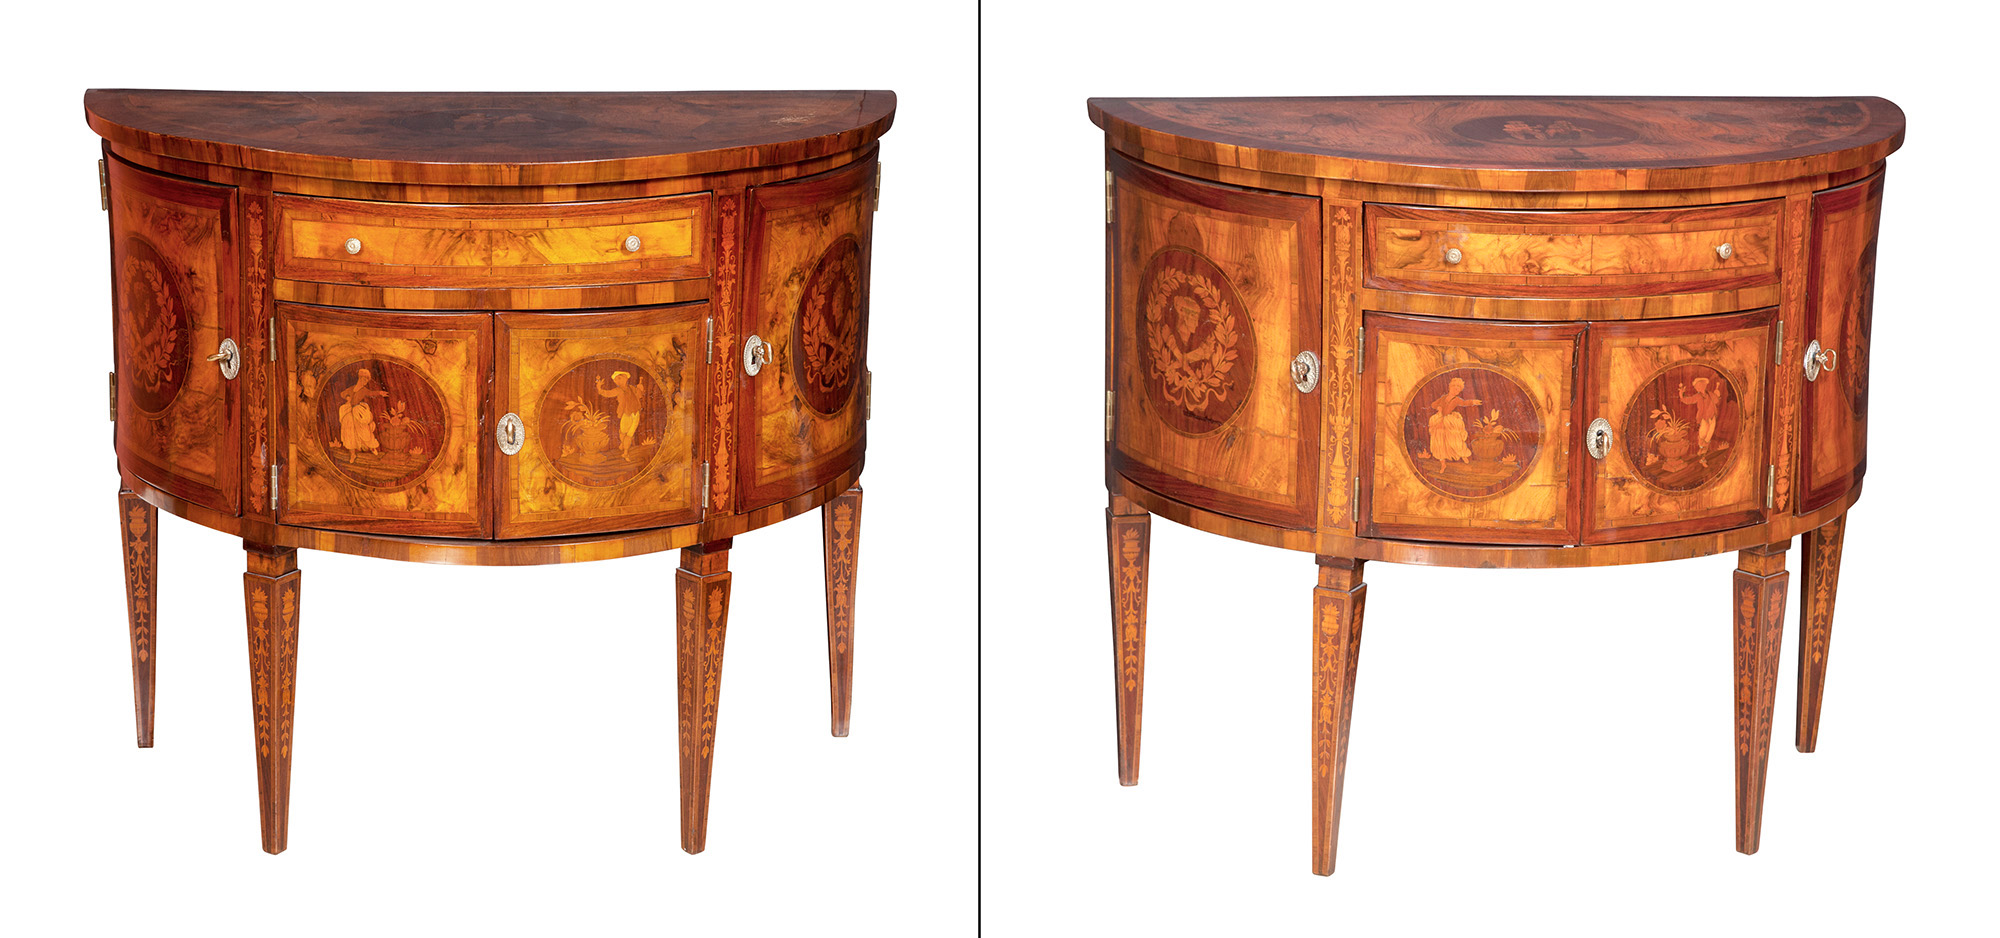 Lot image - Pair of Italian Neoclassical Style Walnut and Marquetry Demilune Side Cabinets